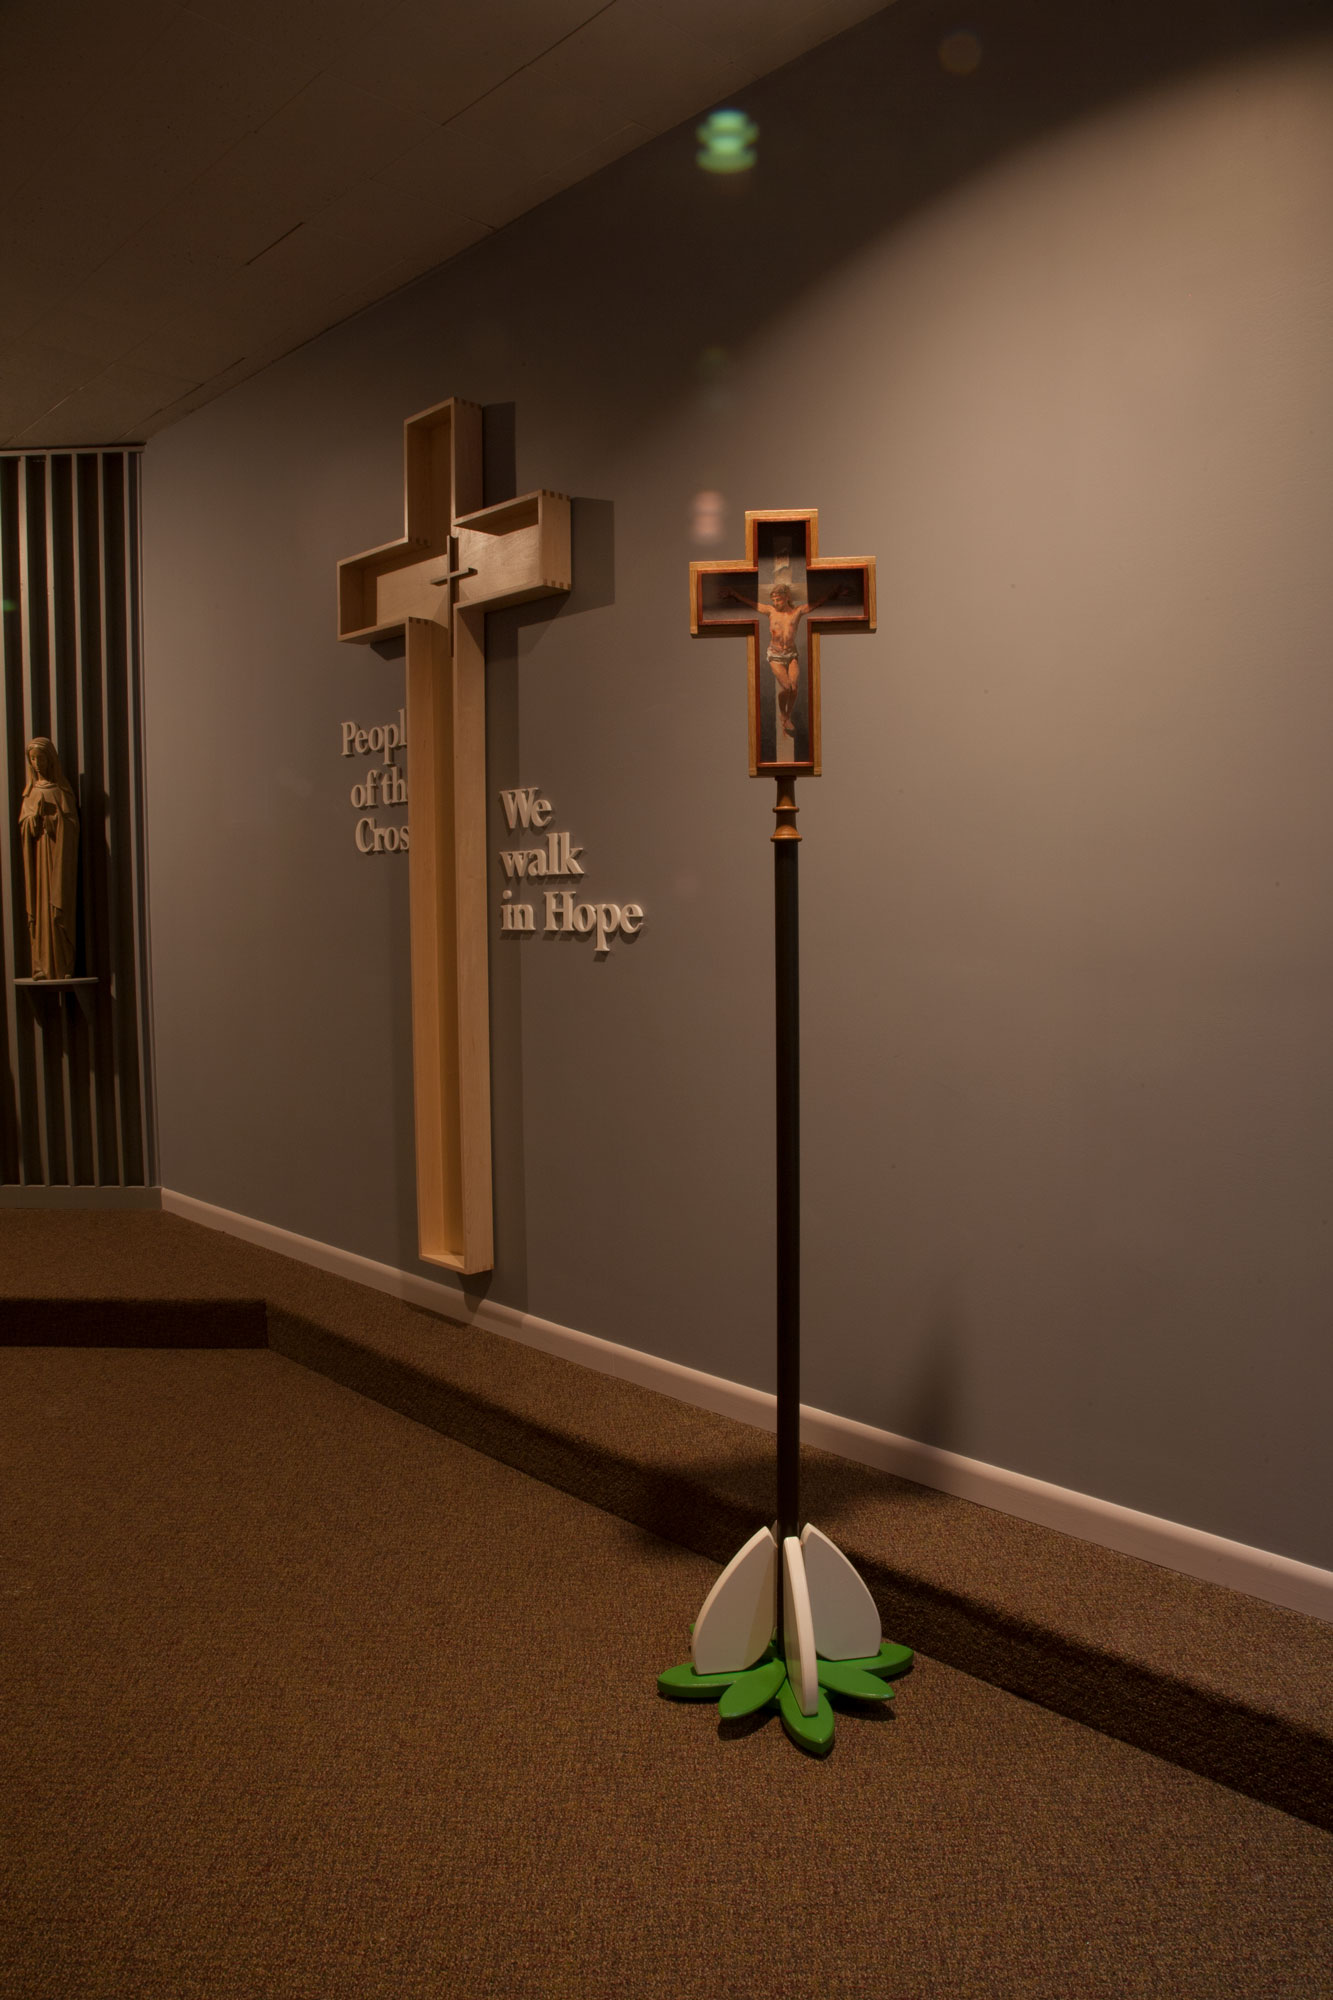 Msgr. O'Dwyer Retreat House: processional cross and wall display dedicated to Mark D. Pacione